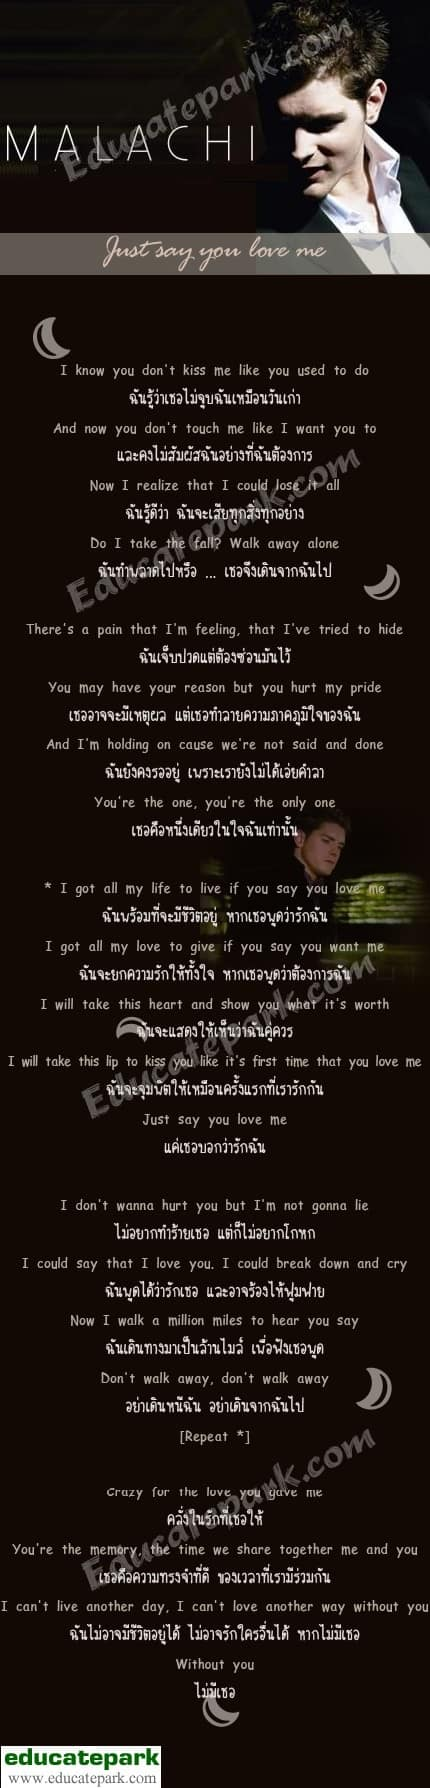 แปลเพลง Just Say You Love Me - Malachi